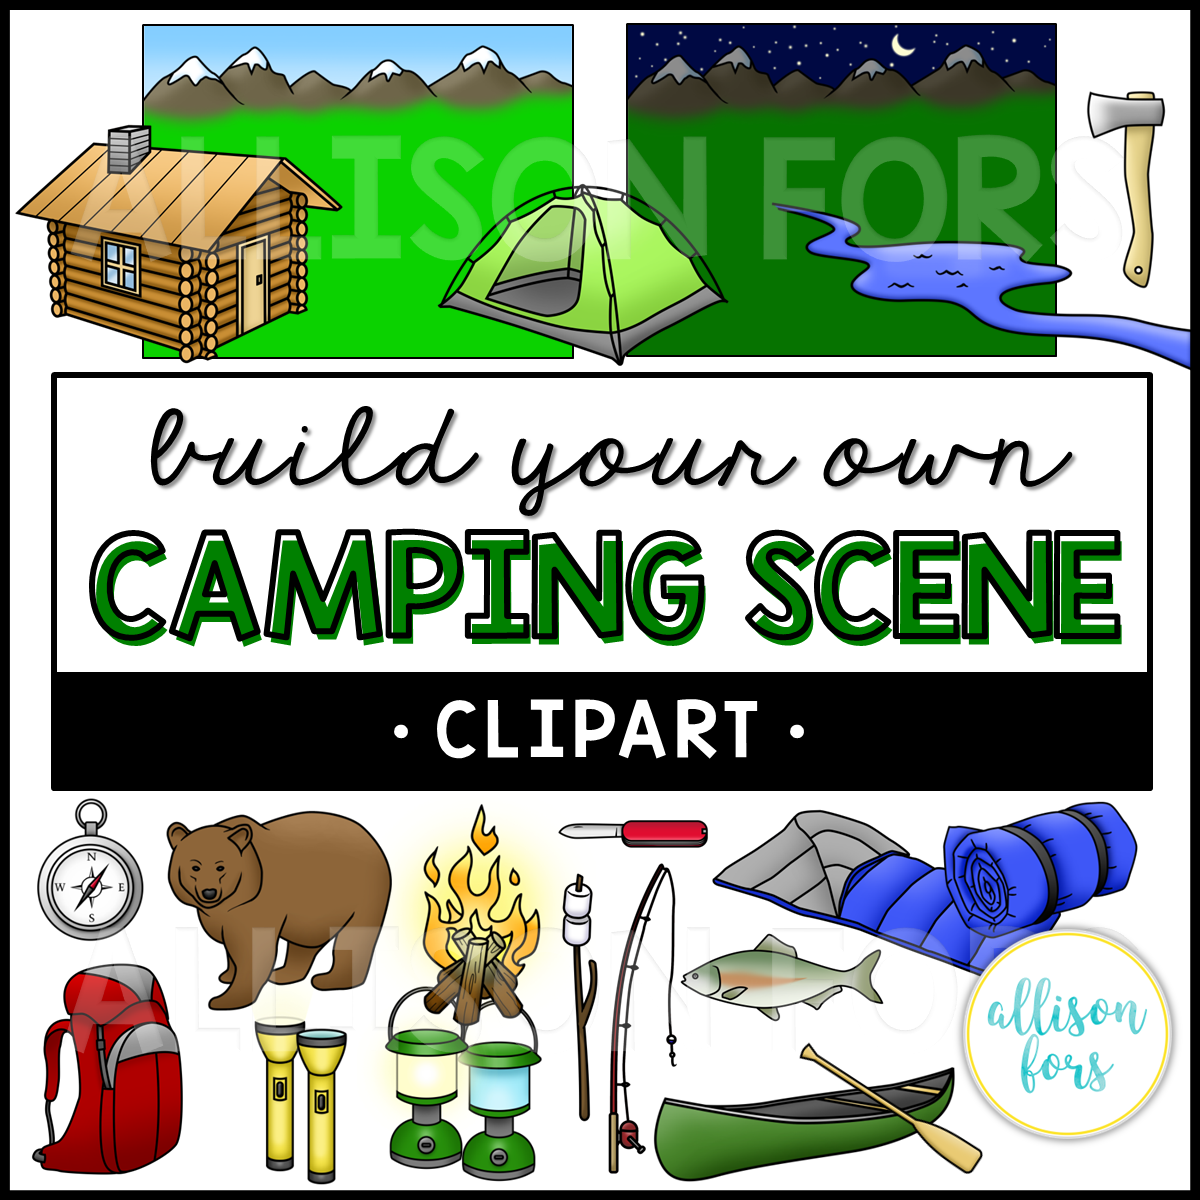 Carryover clipart black and white library Build Your Own: Camping Scene Clip Art black and white library